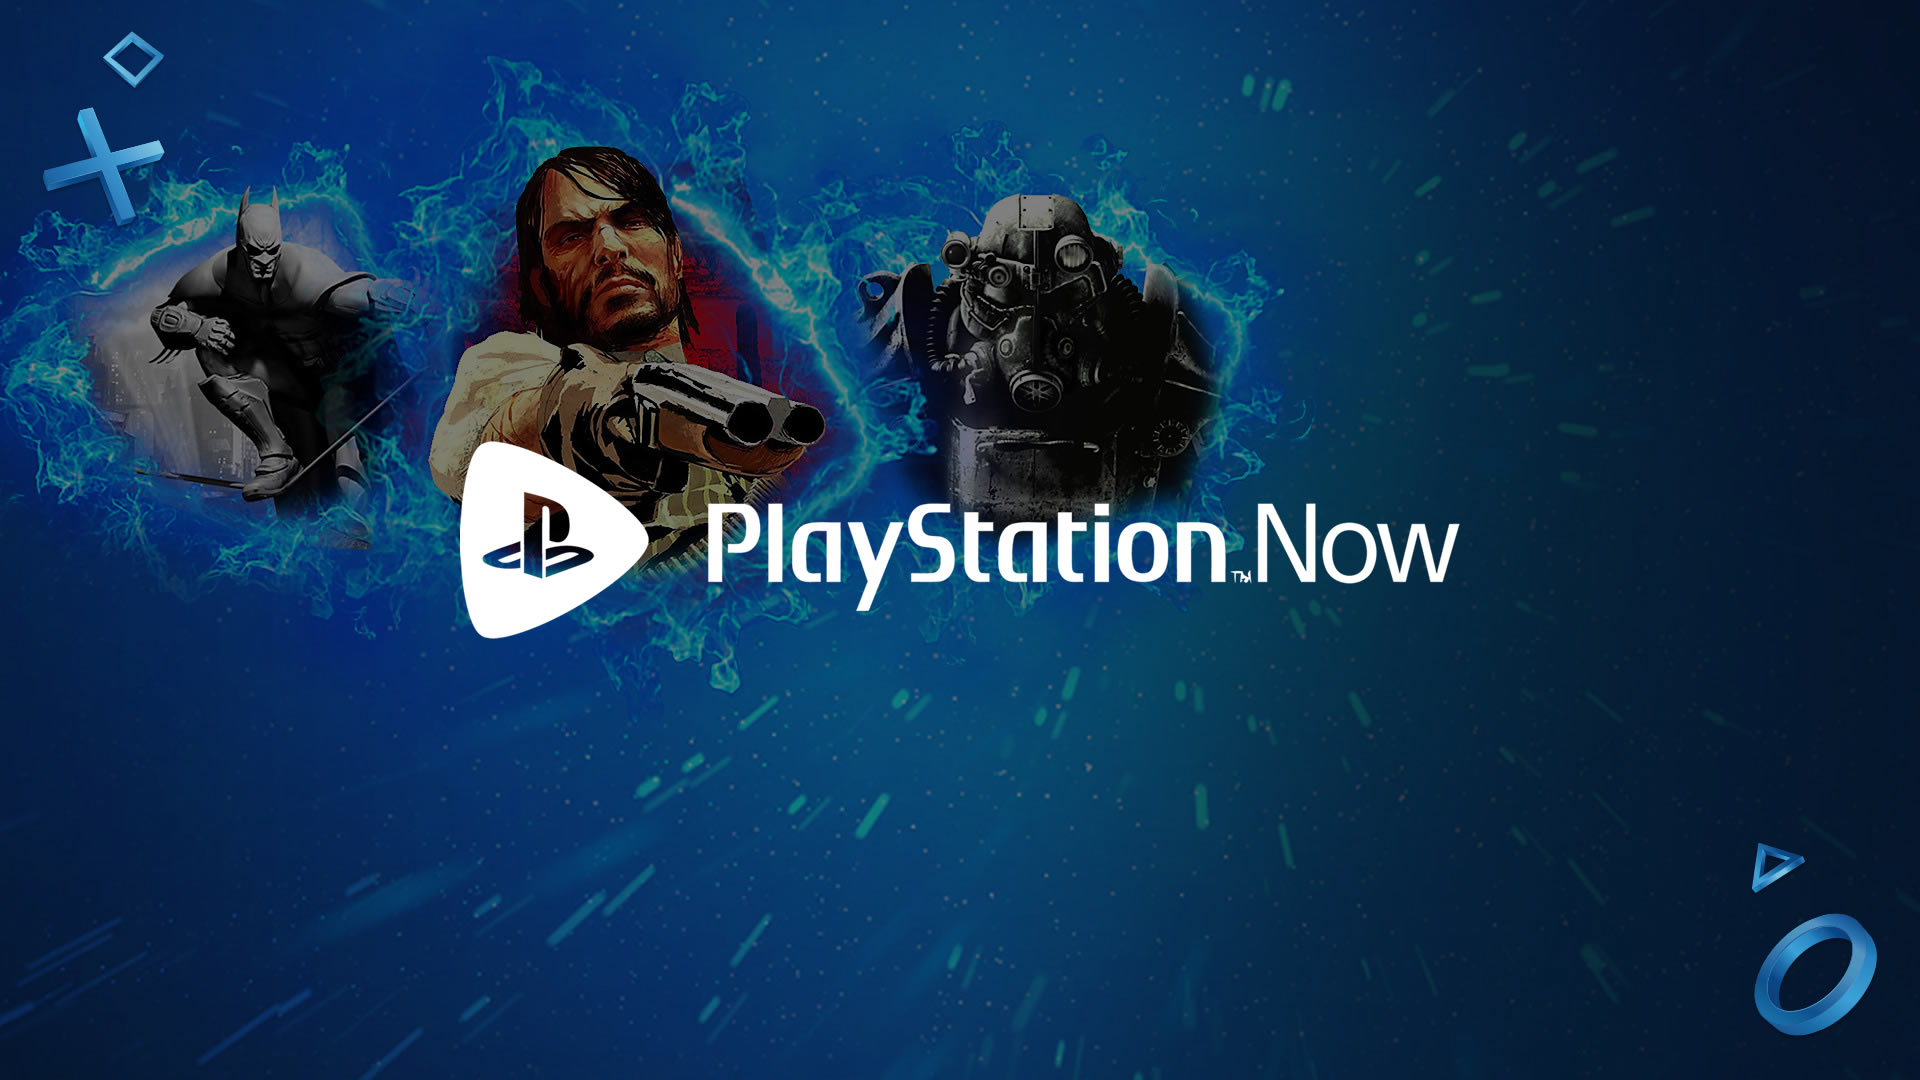 playstation 5 PlayStation Now speciale